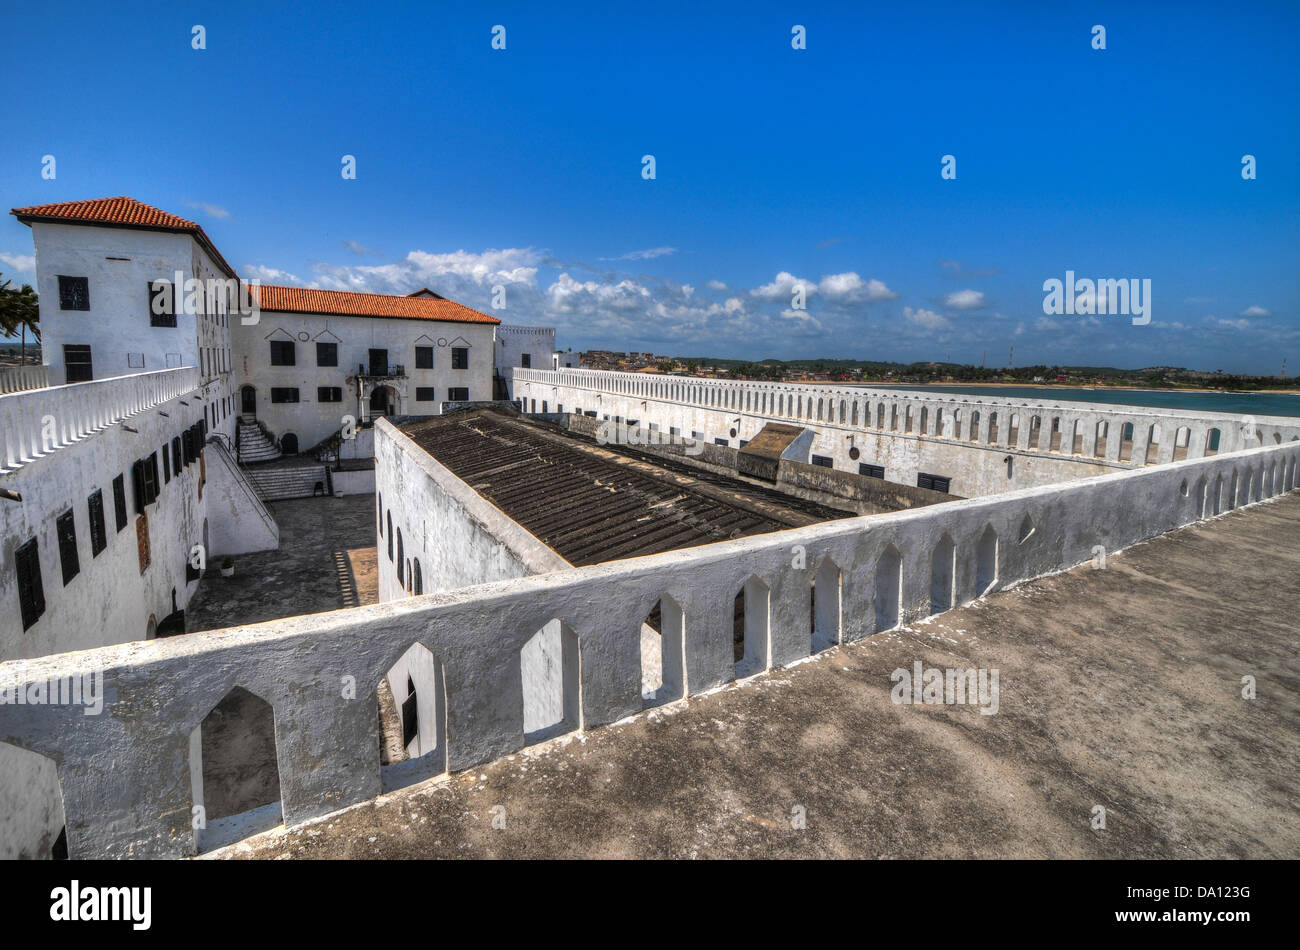 Elmina Castle (also called the Castle of St. George) is located on the Atlantic coast of Ghana west of the capital, - Stock Image